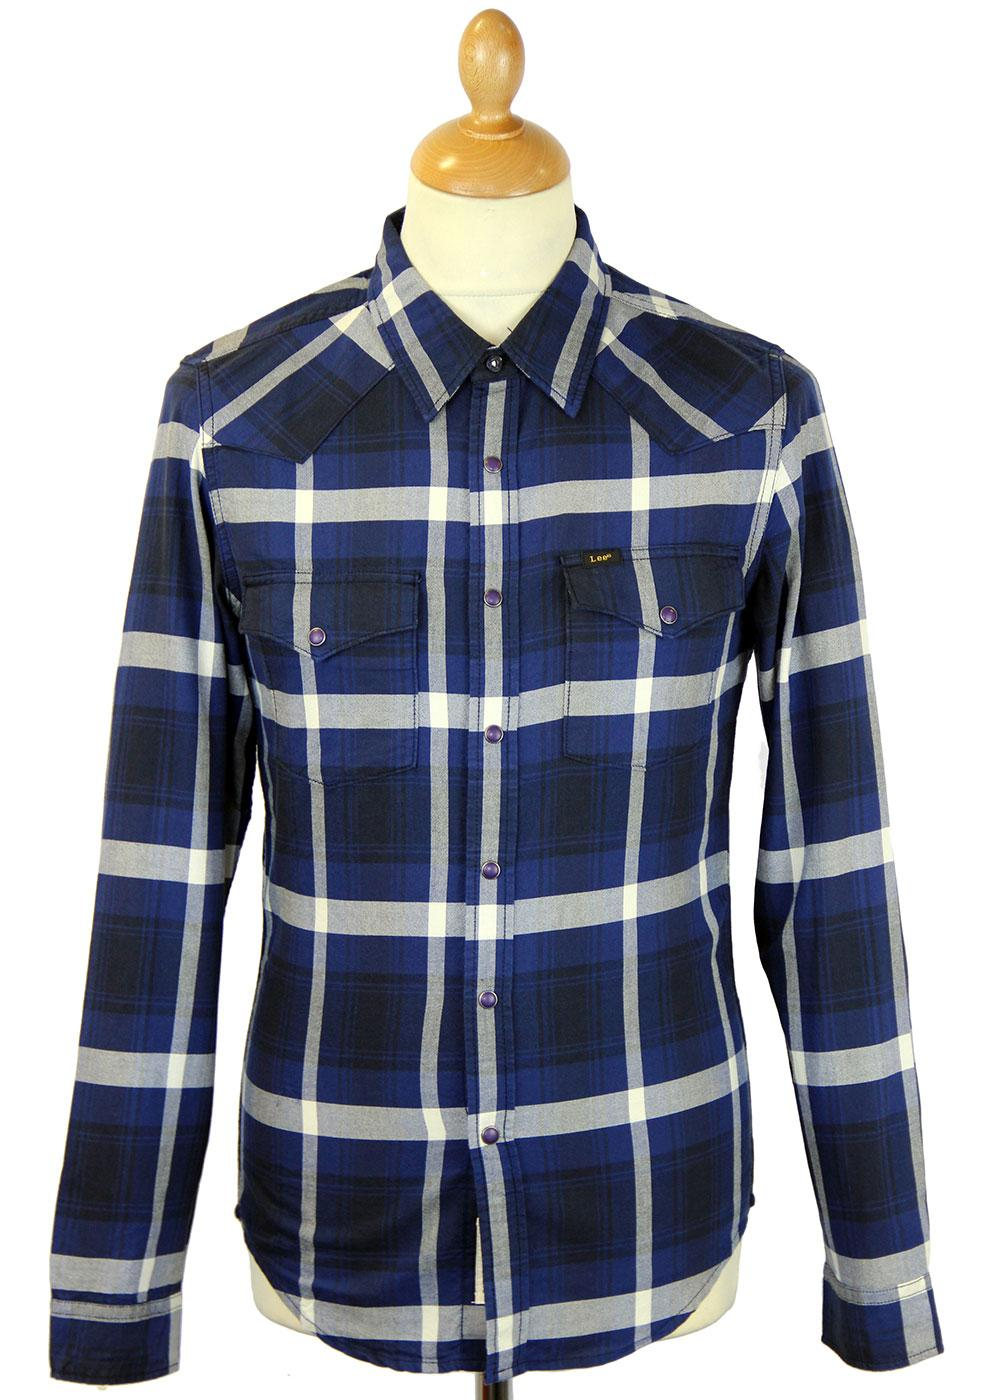 LEE Jeans Retro Indie Mod Check Western Shirt MB